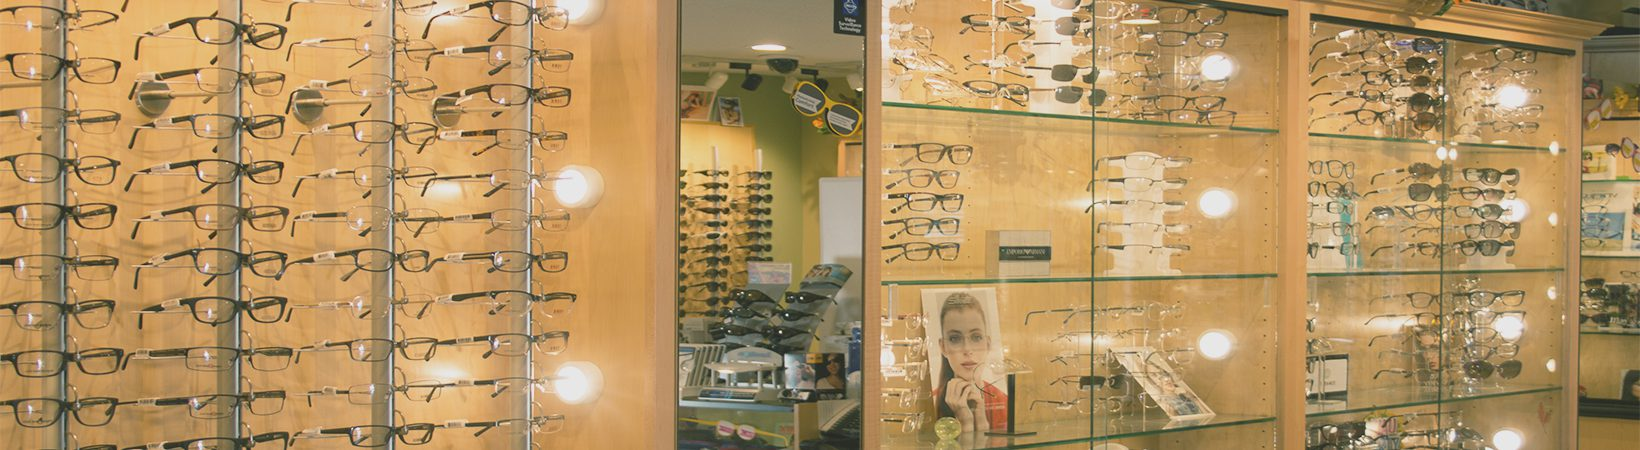 Golden Eye Optometry